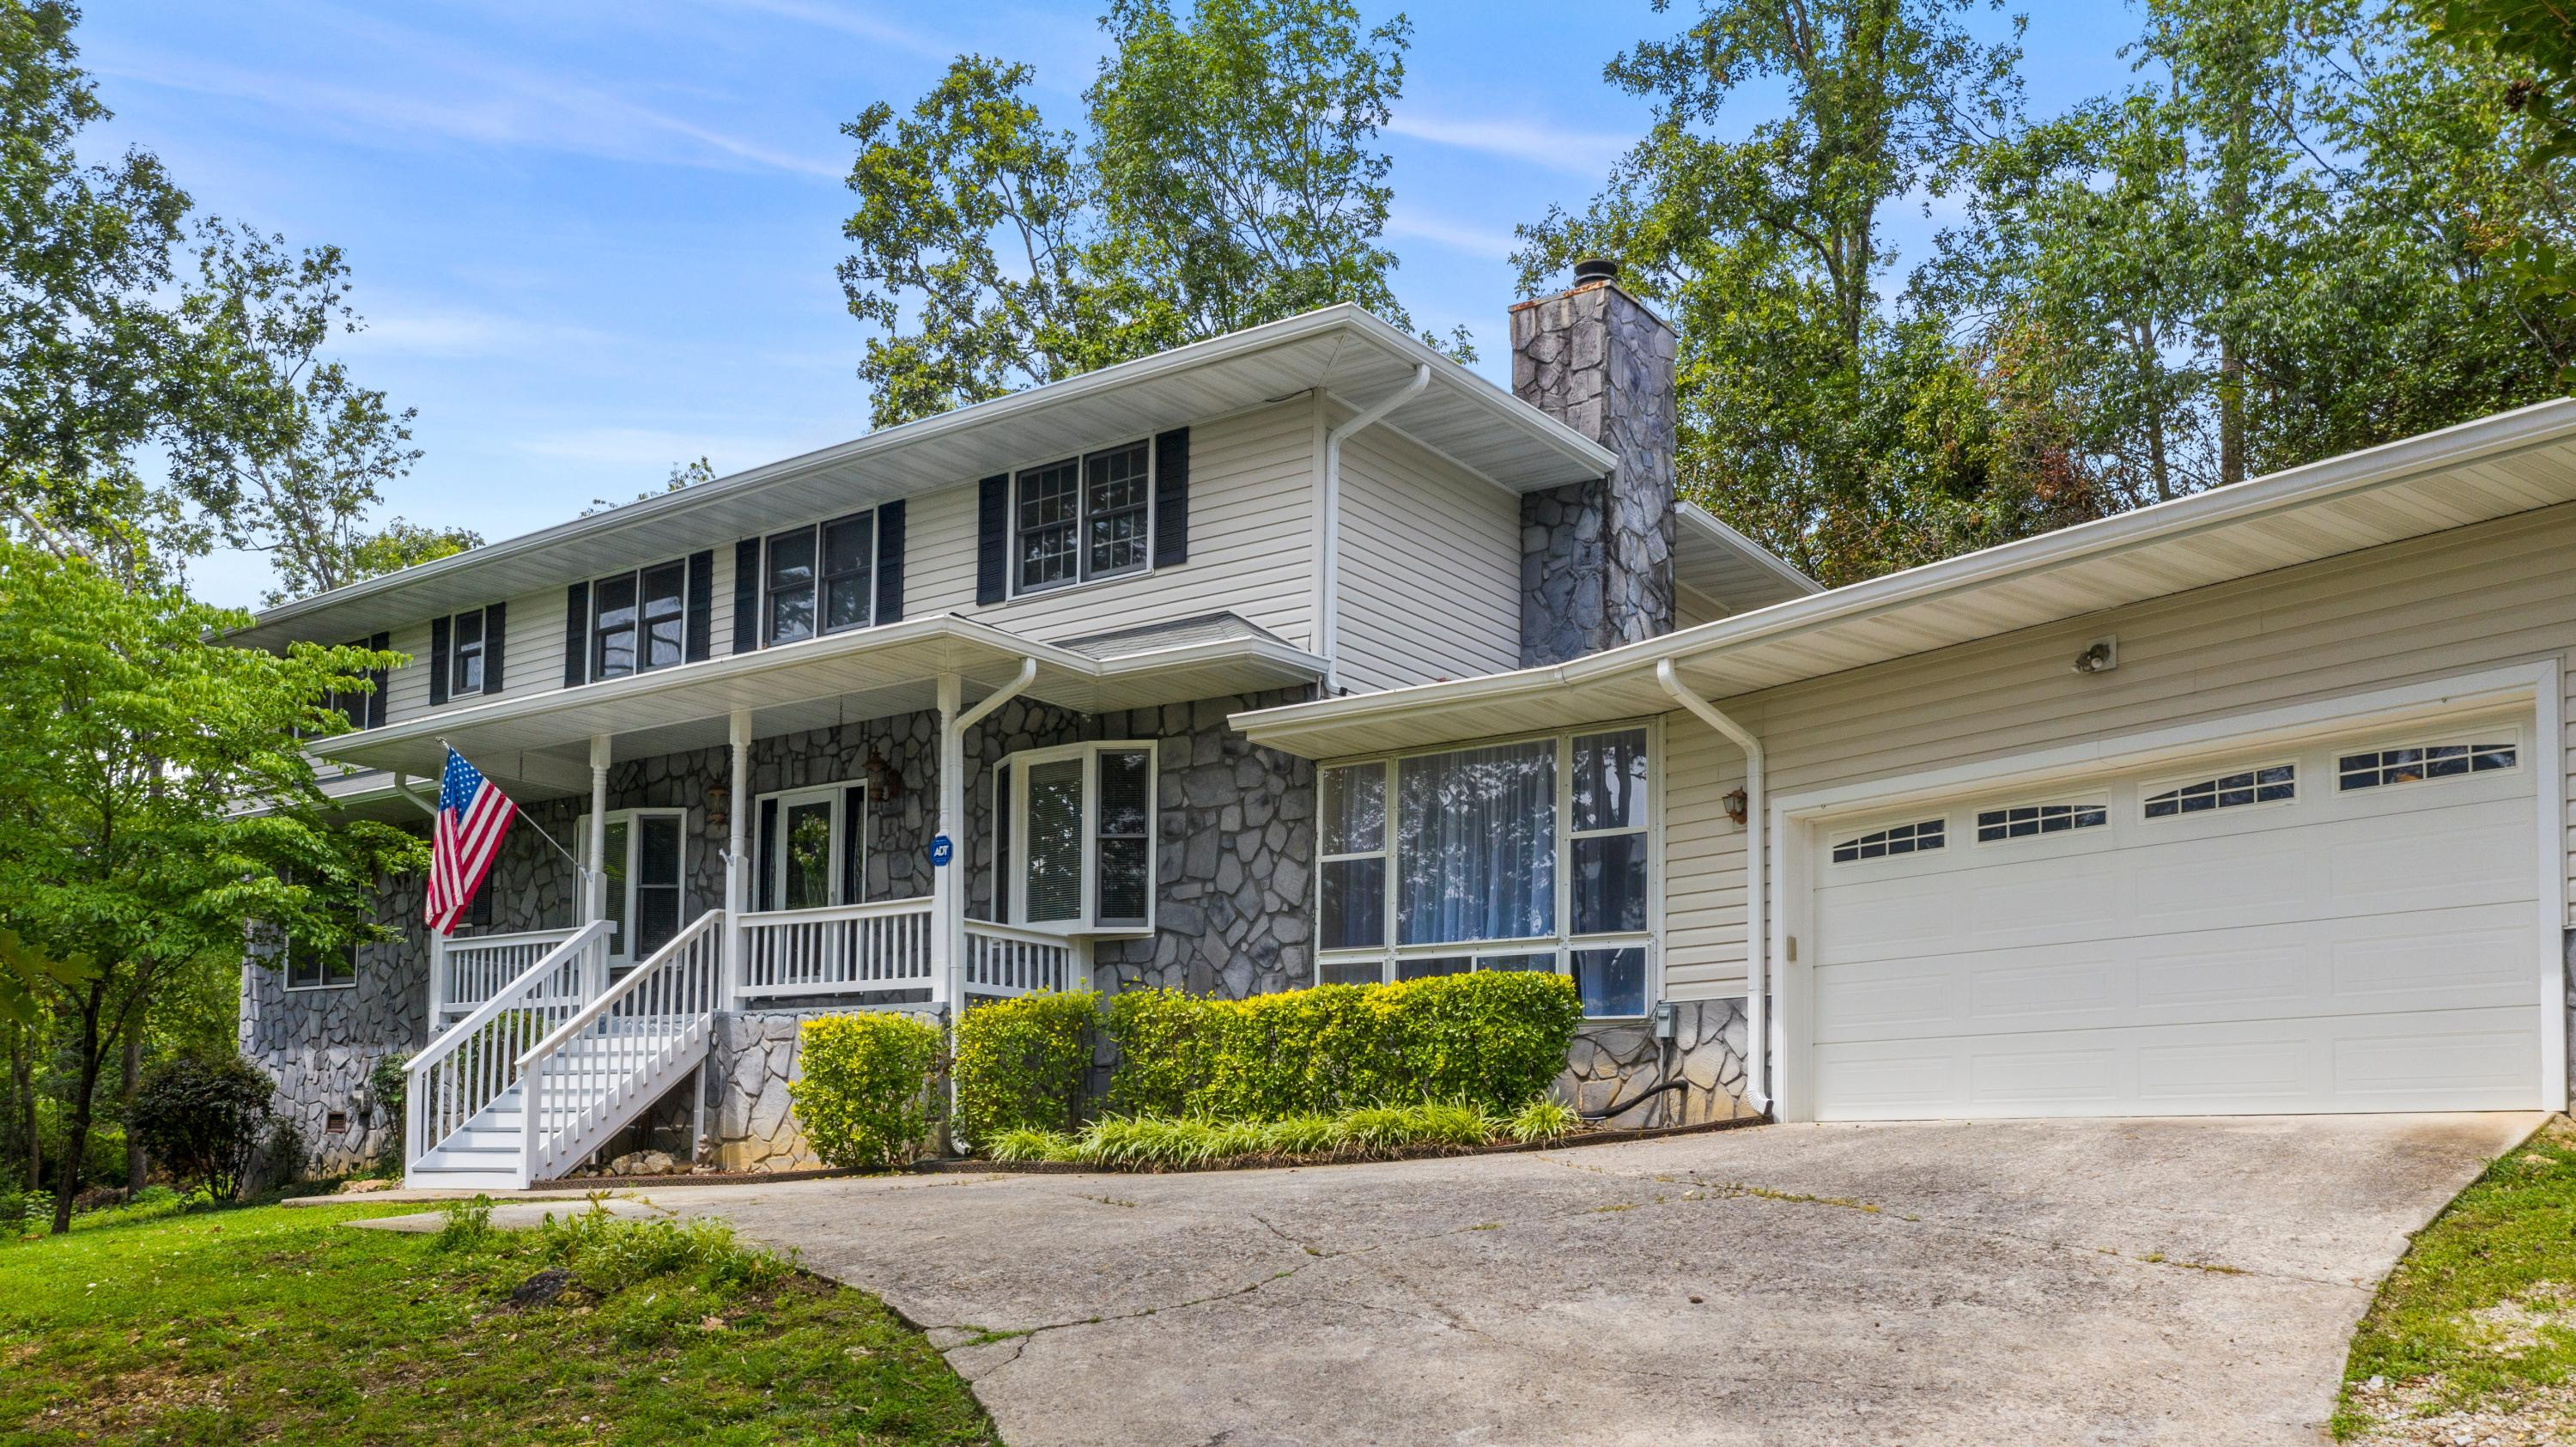 8218 Bay Berry Dr, Chattanooga, TN 37421